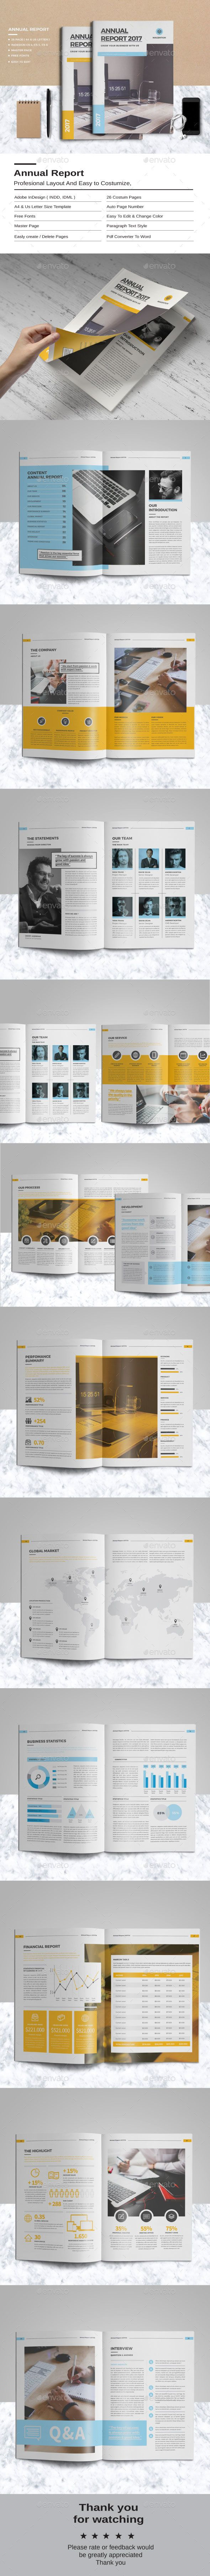 Annual Report Template InDesign INDD - 26 Pages, A4 & US Letter Size